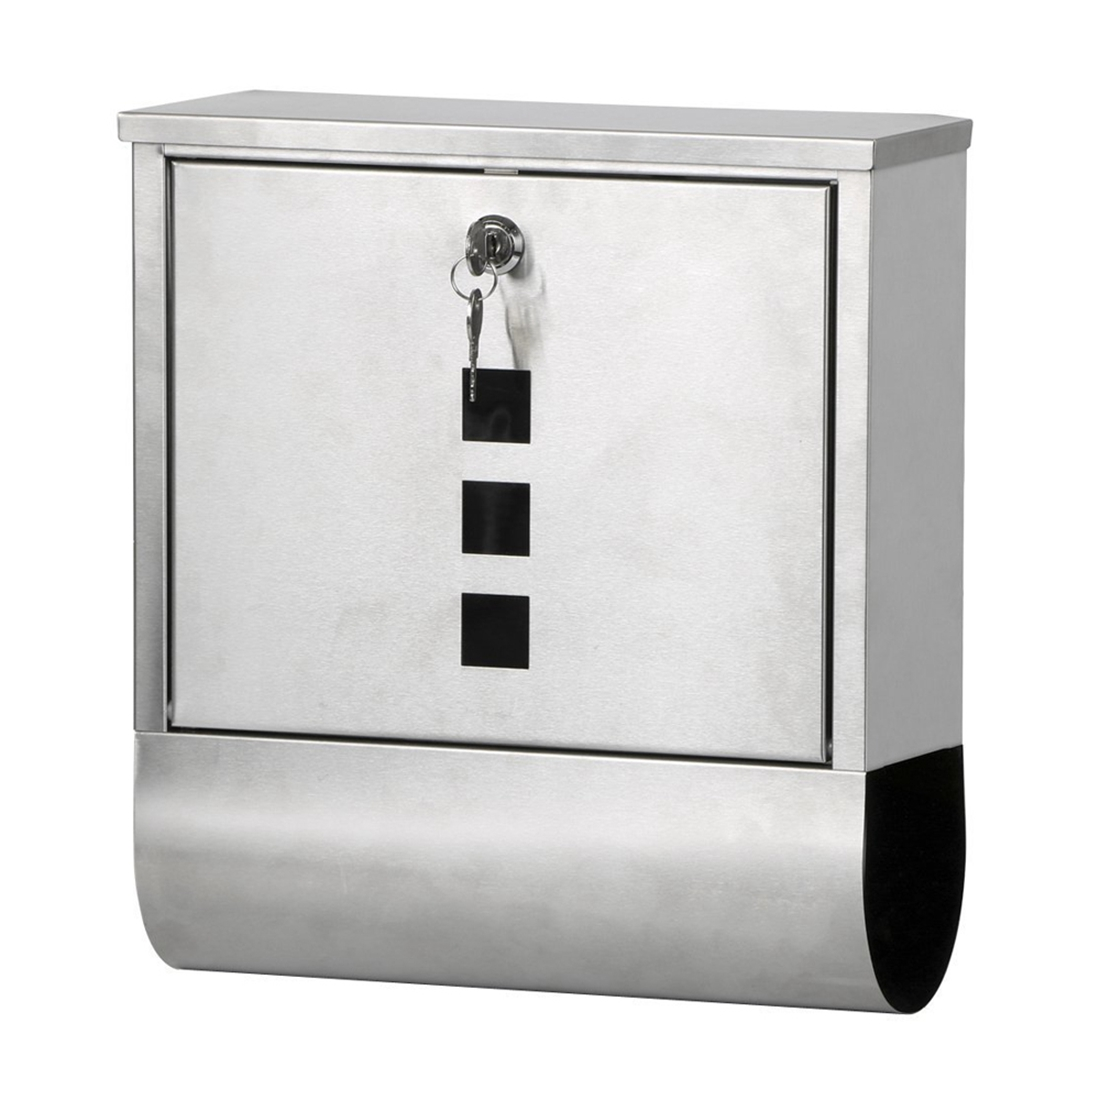 Promotion Waterproof Stainless Steel Lockable Mailbox Newspaper Holder Outdoor Mail Post Letter Box